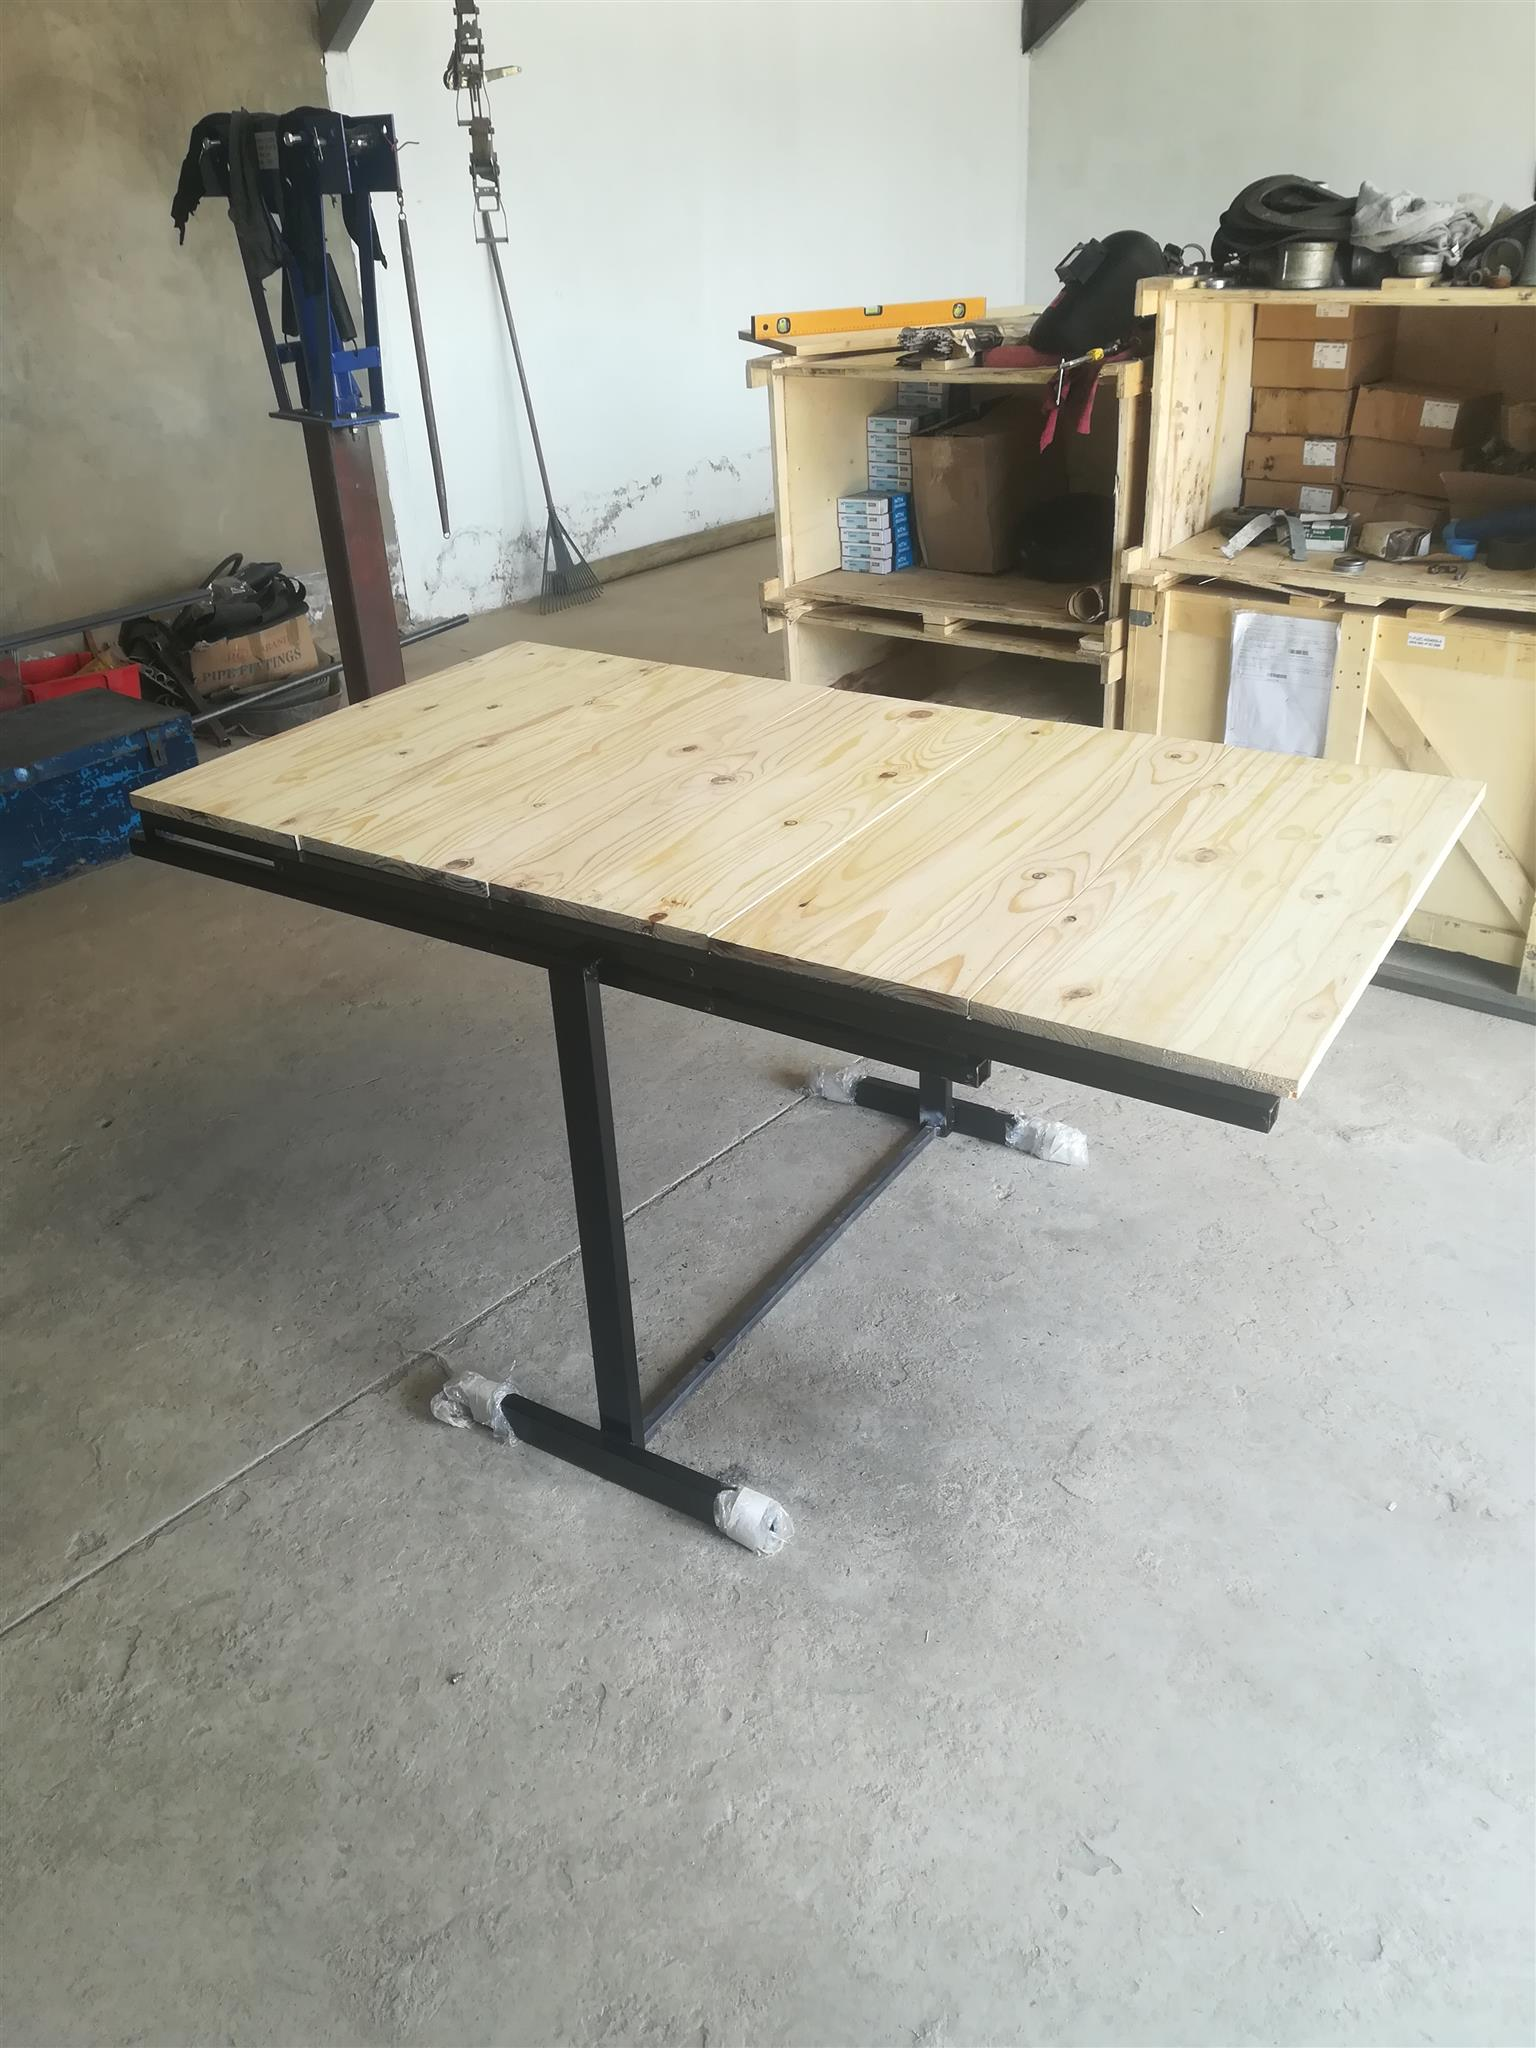 Foldable tables/shelves an work stations